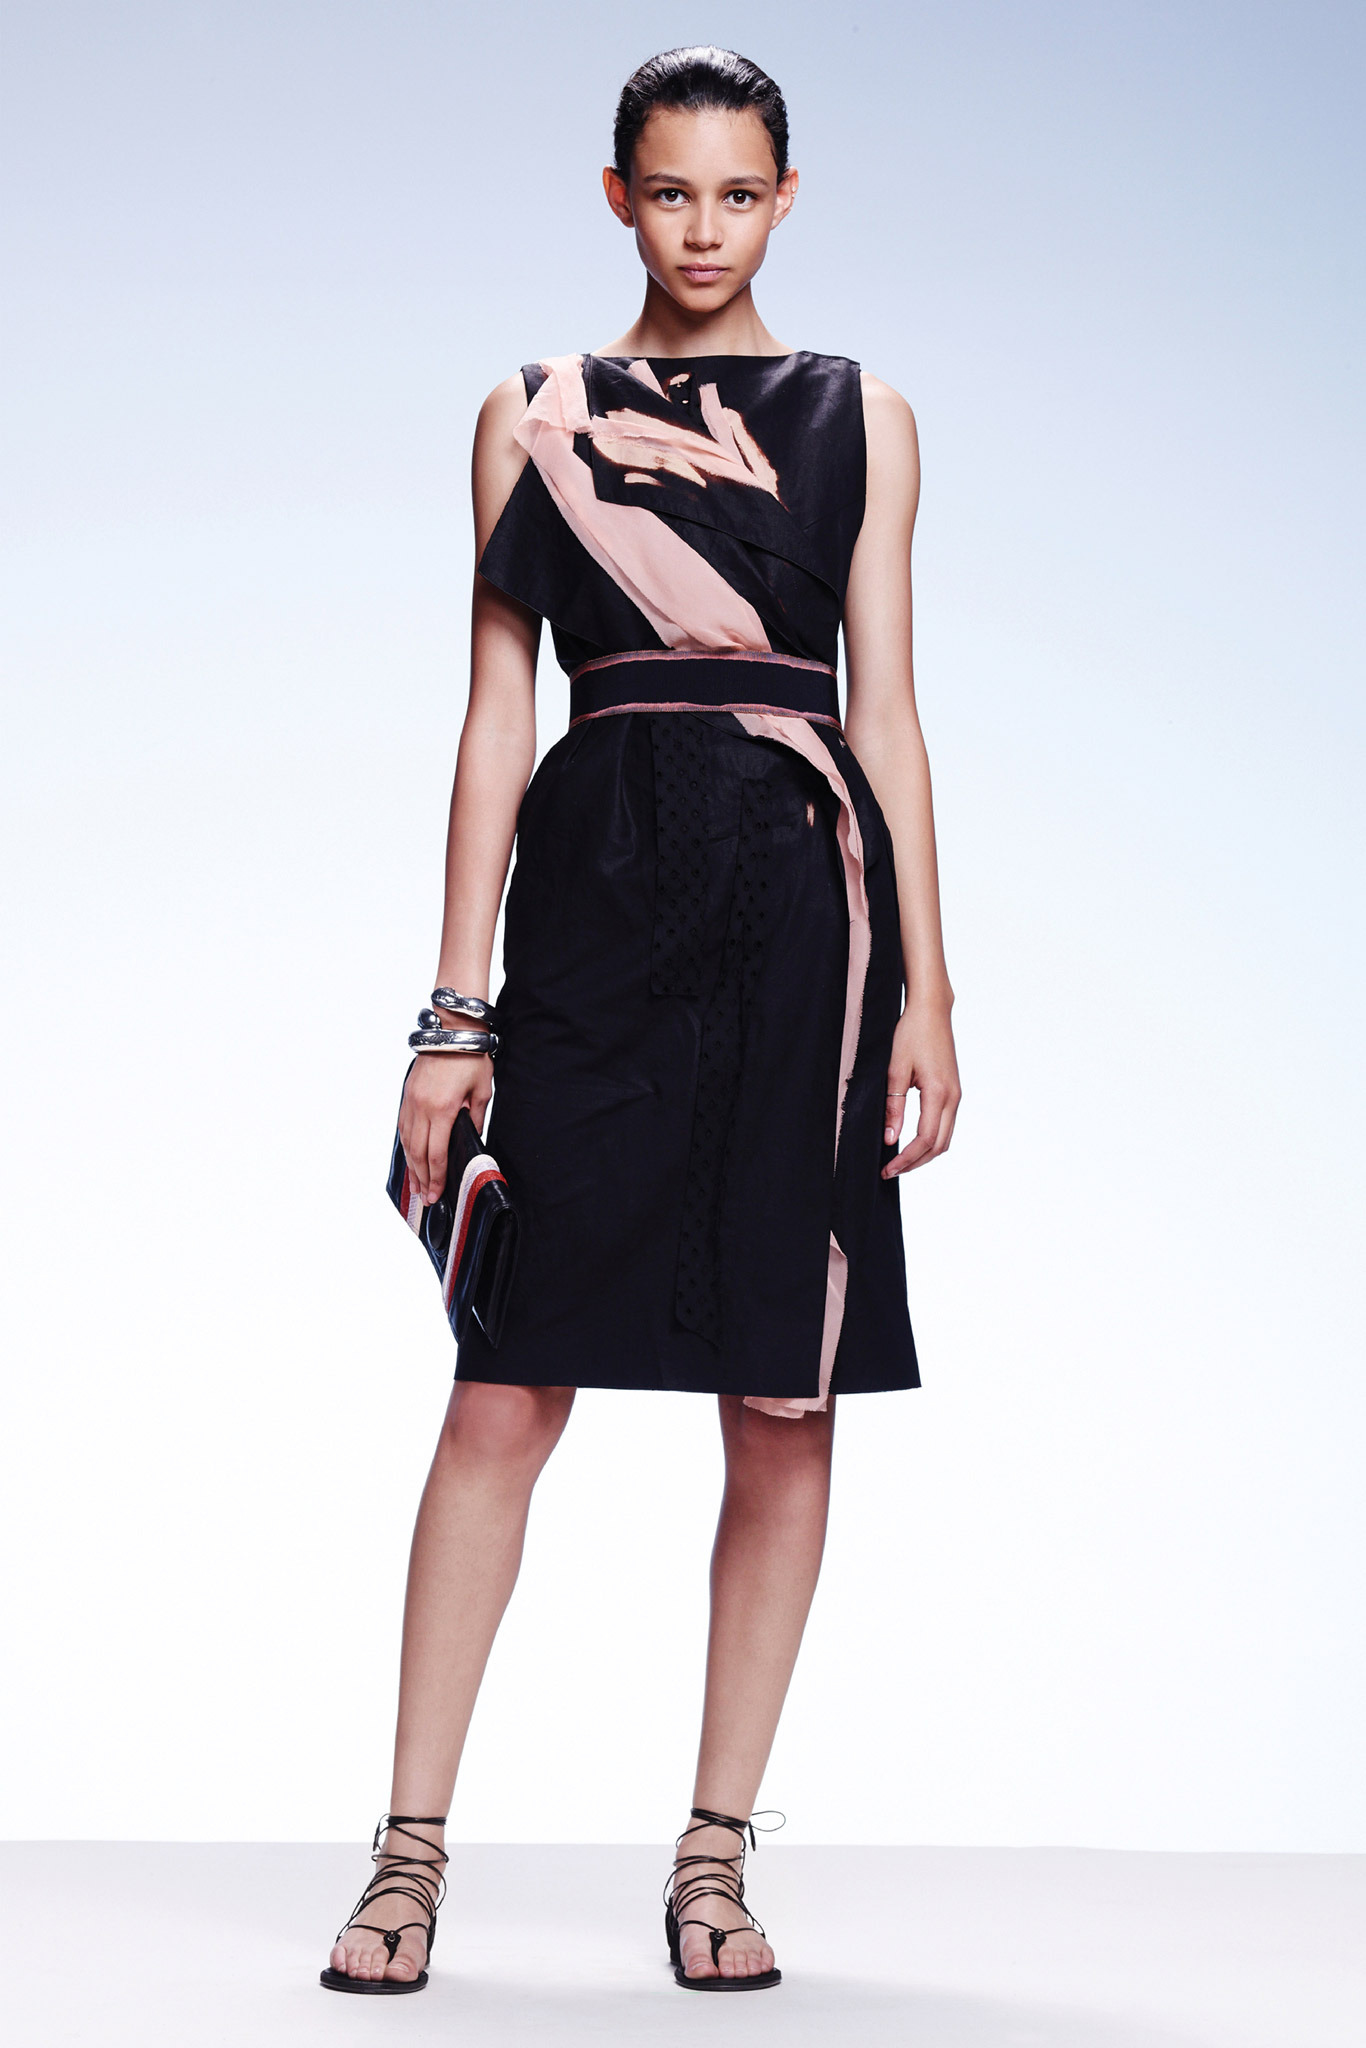 Binx | Bottega Veneta Resort 2015 (Photography: Courtesy Of Bottega Veneta via Style.com)